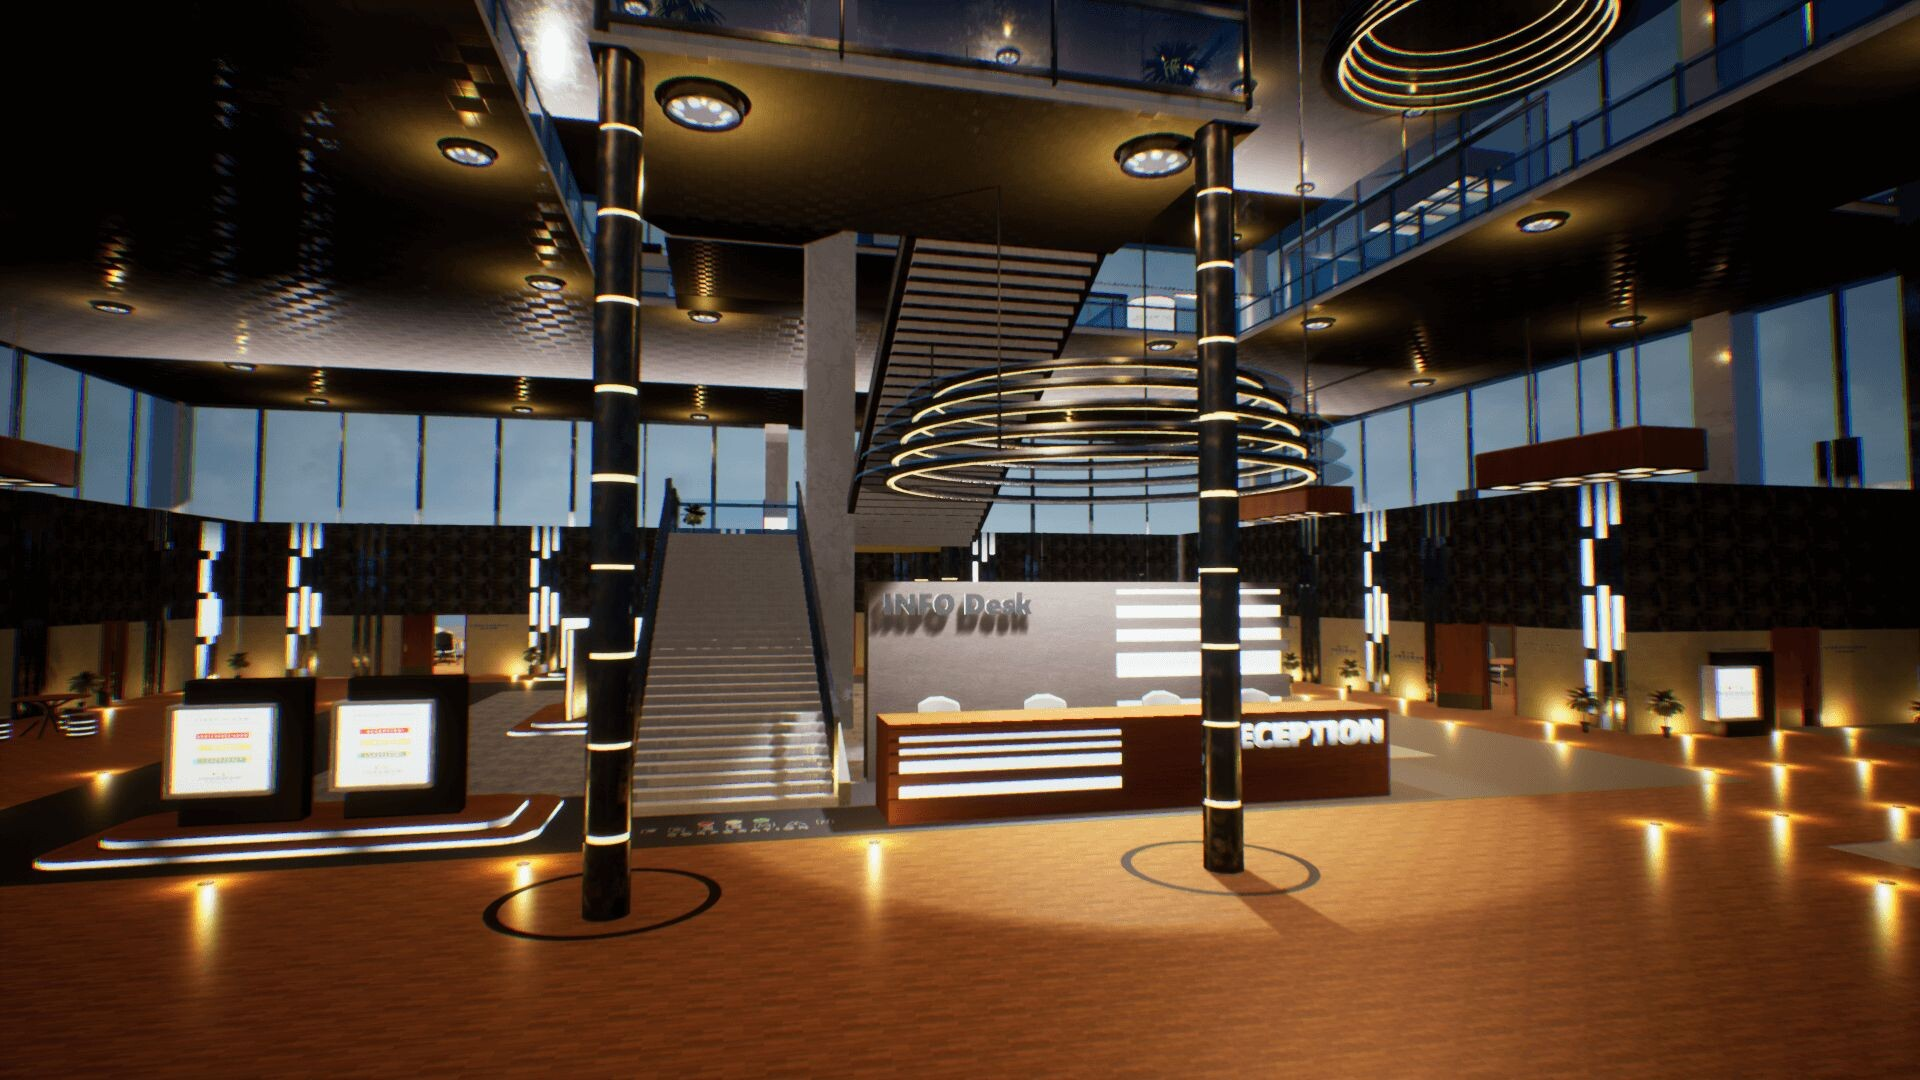 An image showing Corporate Building Freeman asset pack, created with Unreal Engine 4.